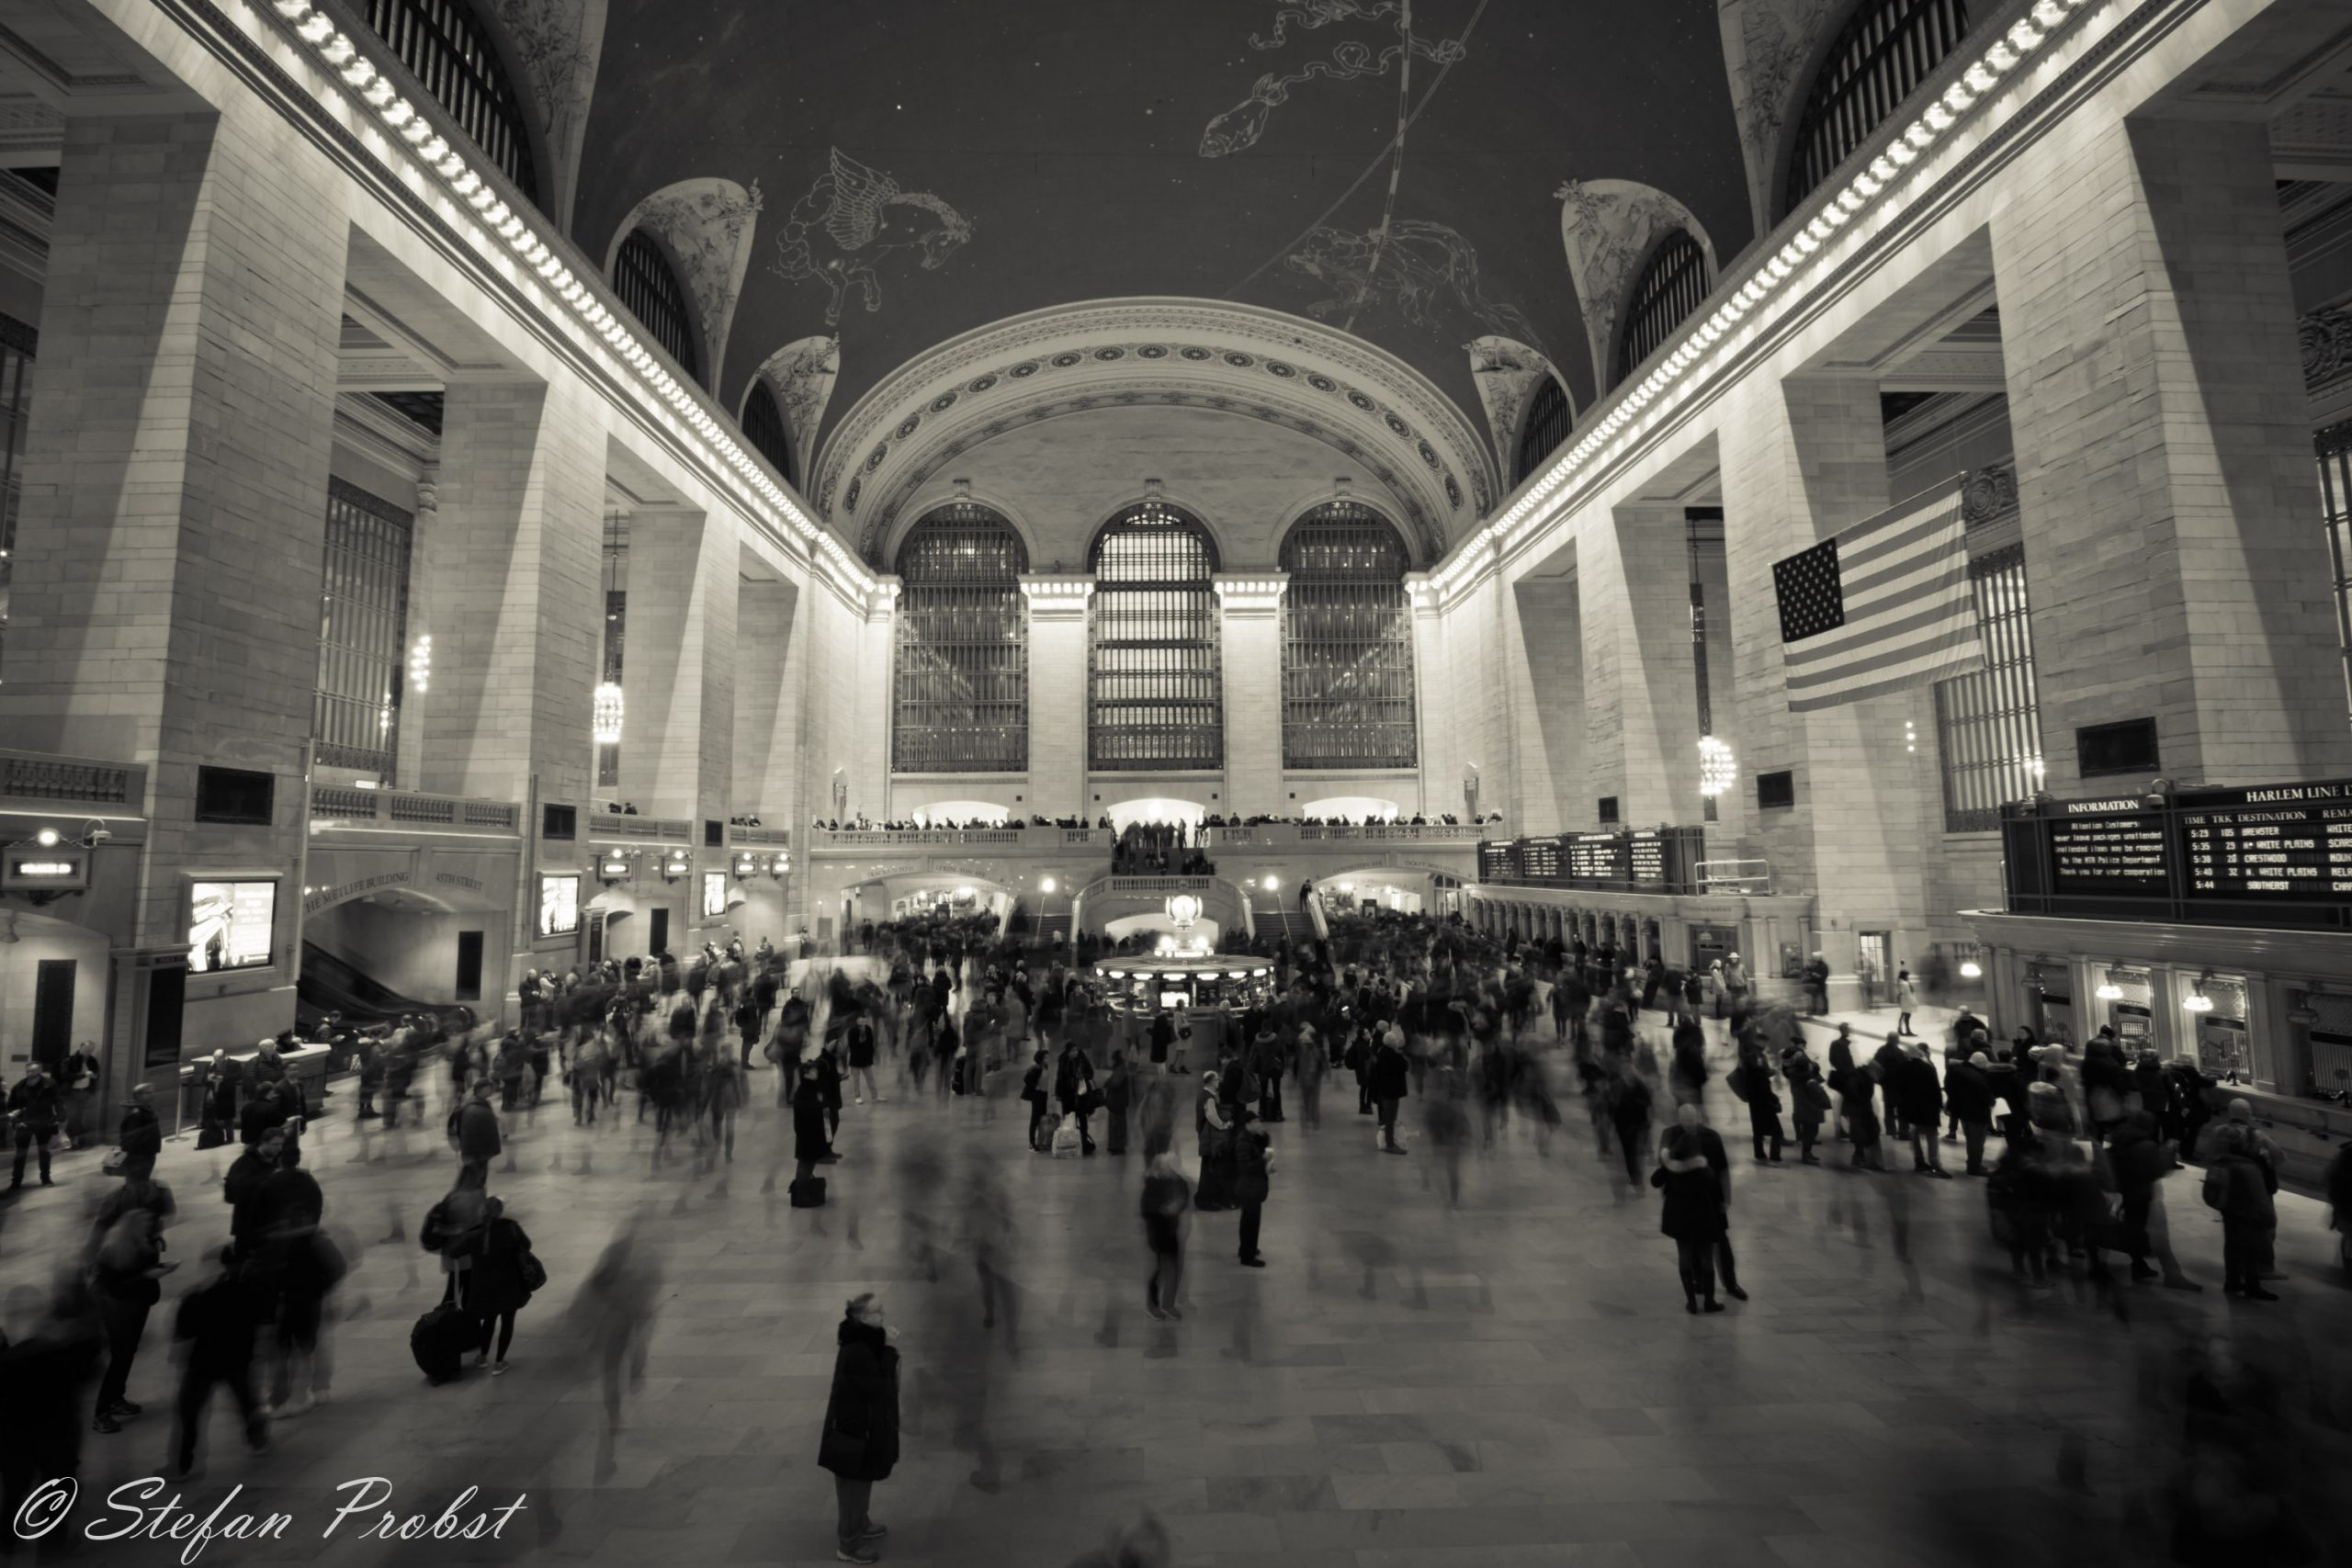 USA - New York - Grand Central Station